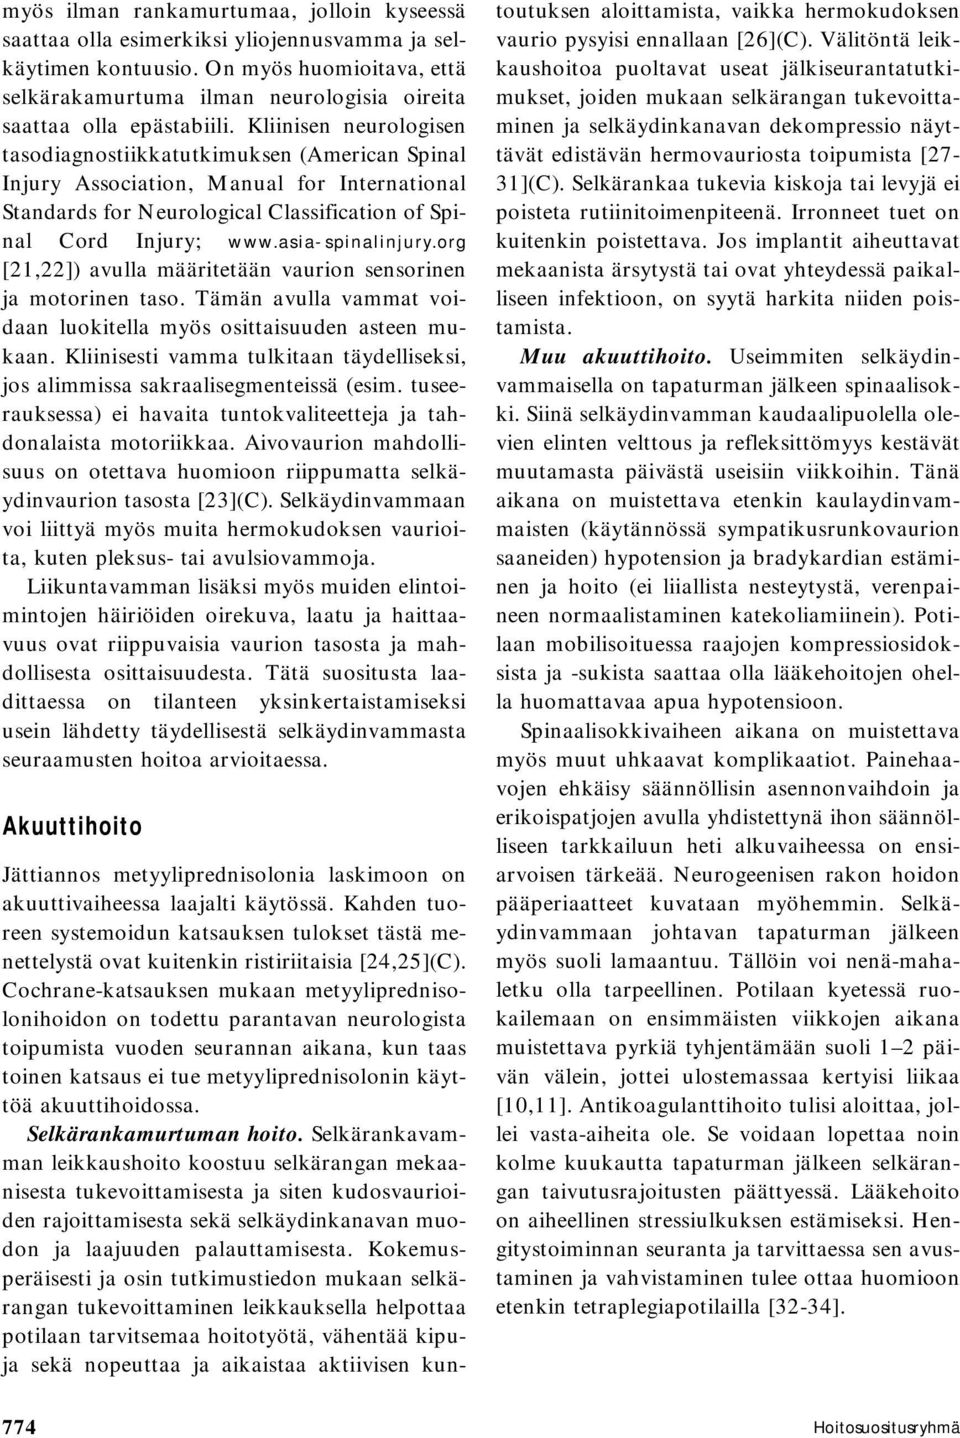 Kliinisen neurologisen tasodiagnostiikkatutkimuksen (American Spinal Injury Association, Manual for International Standards for Neurological Classification of Spinal Cord Injury; www.